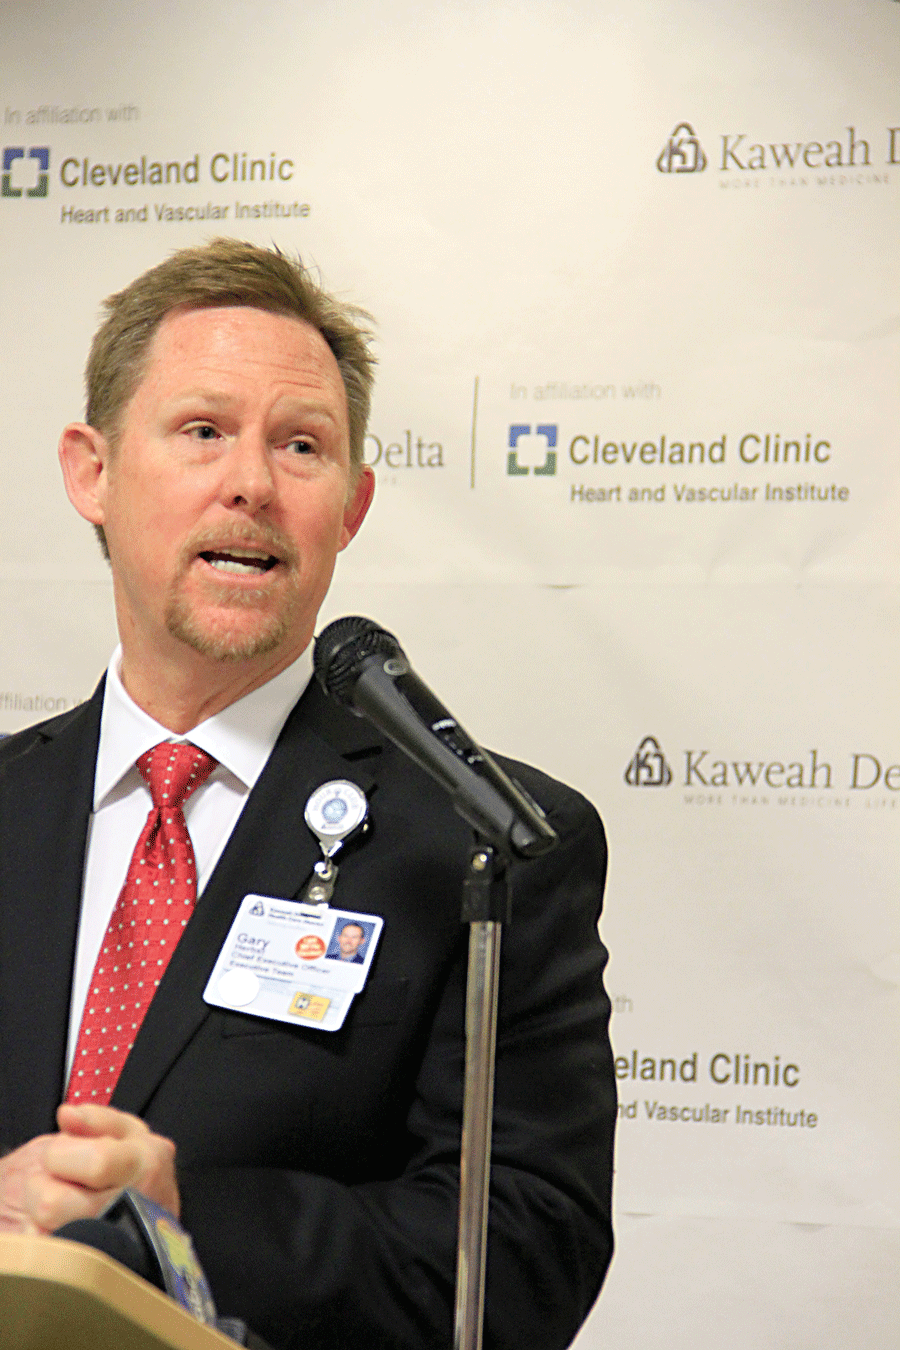 Kaweah Delta launches affiliation with Cleveland Clinic, the